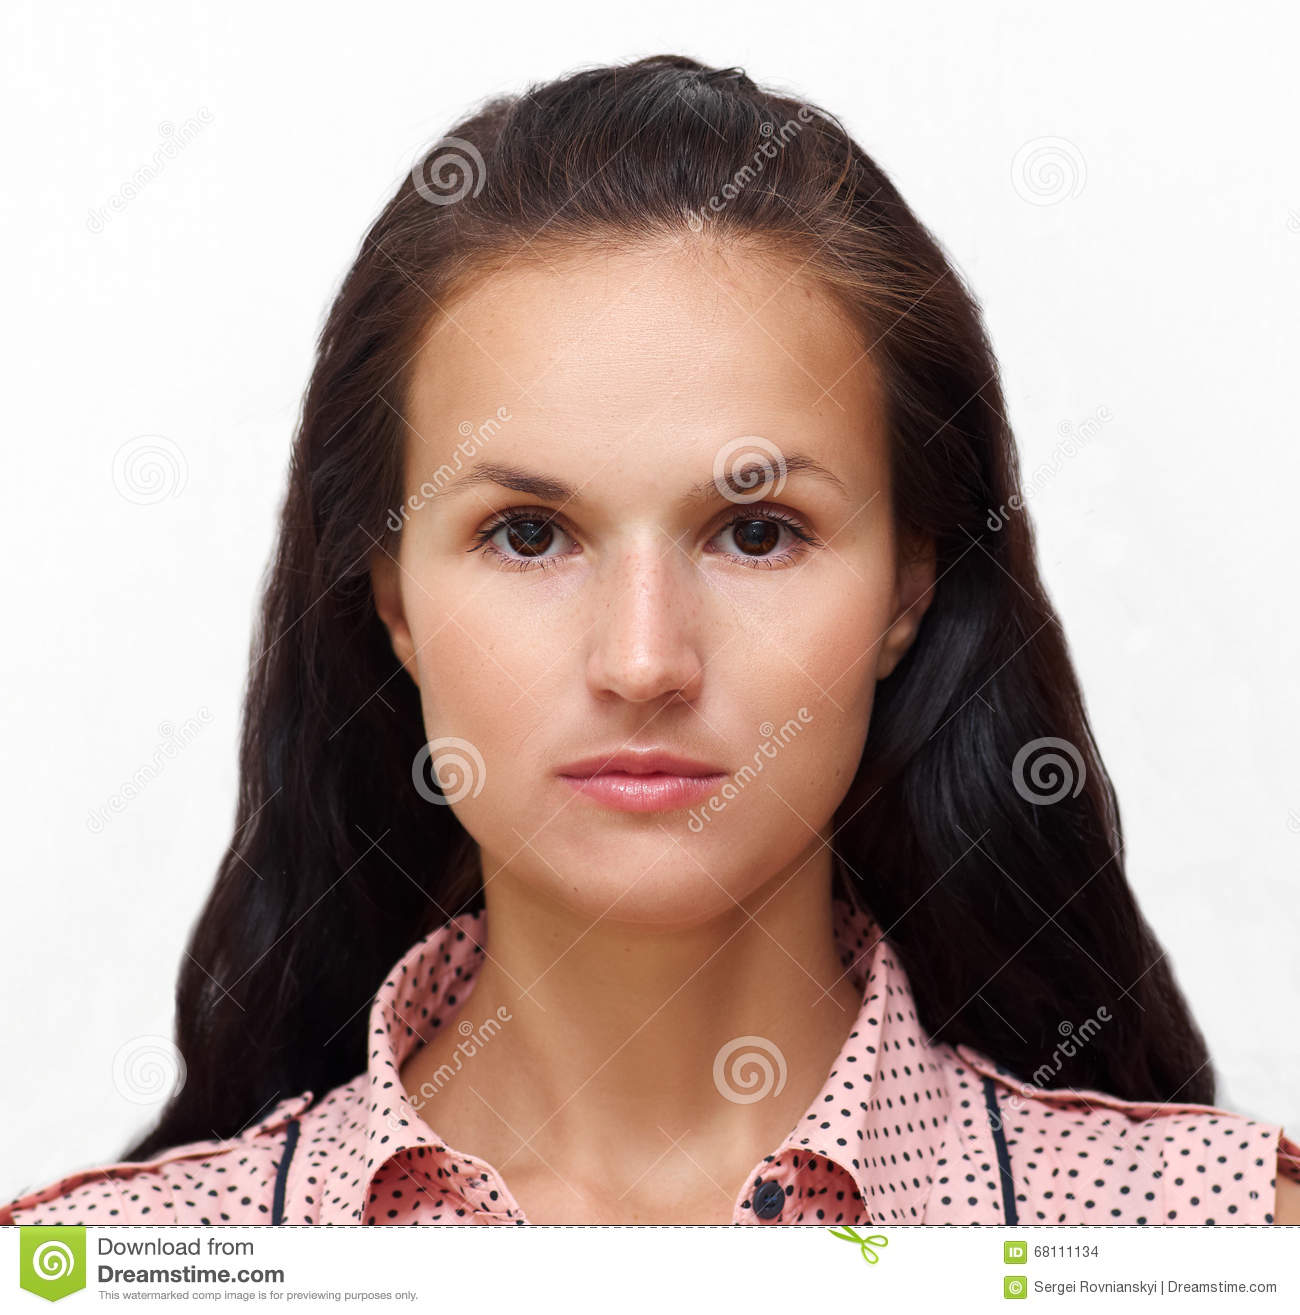 Portrait of a young pretty woman with charming gentle look